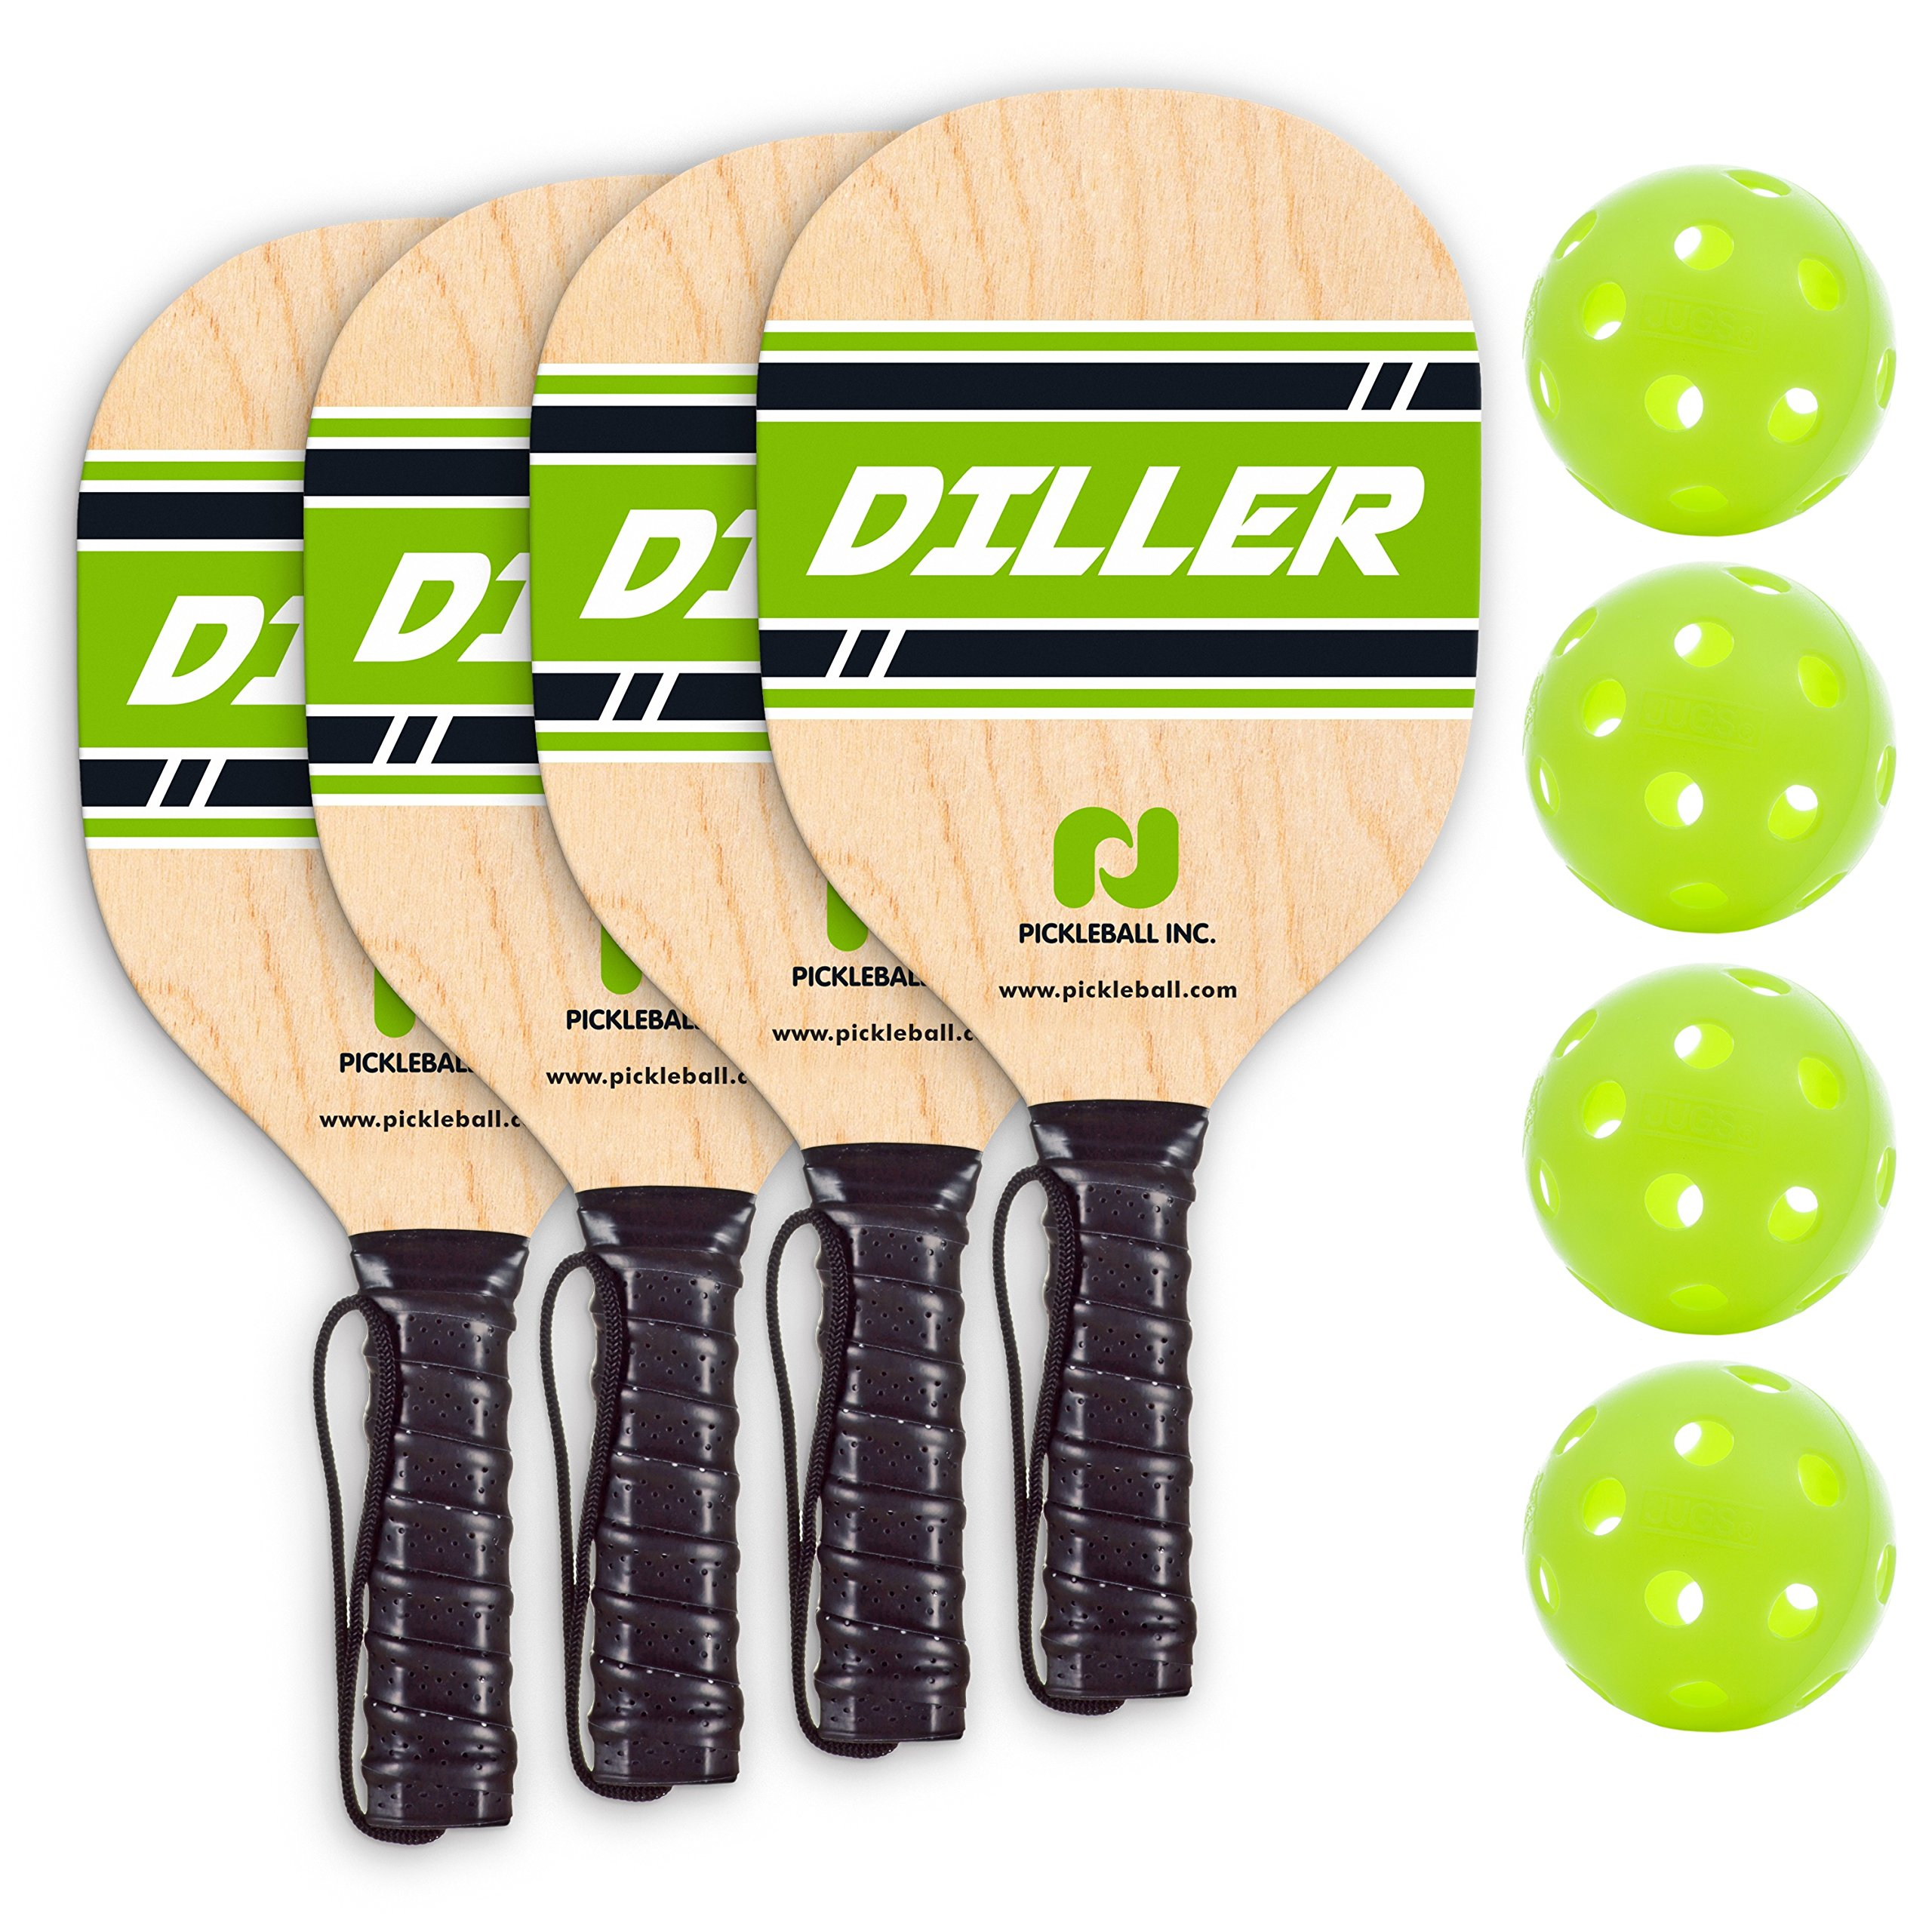 Pickle-Ball, Inc. Pickleball Diller Tournament Net Set (Set Includes Metal Frame + Net + 4 paddles + 4 balls + Rules Sheet in Carry Bag) by Pickle-Ball (Image #8)